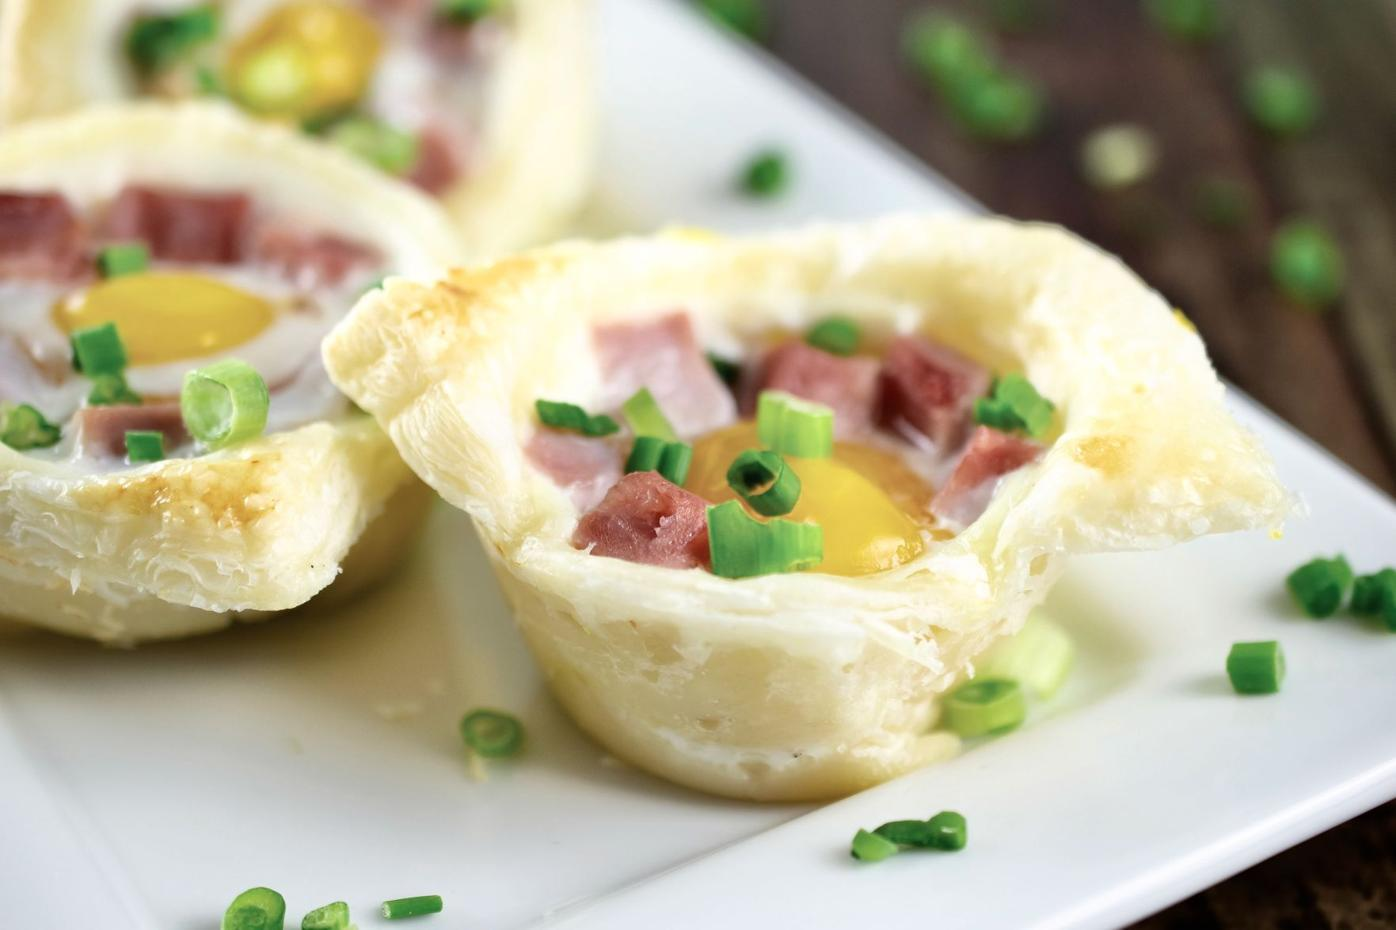 PASTRY BRUNCH CUPS